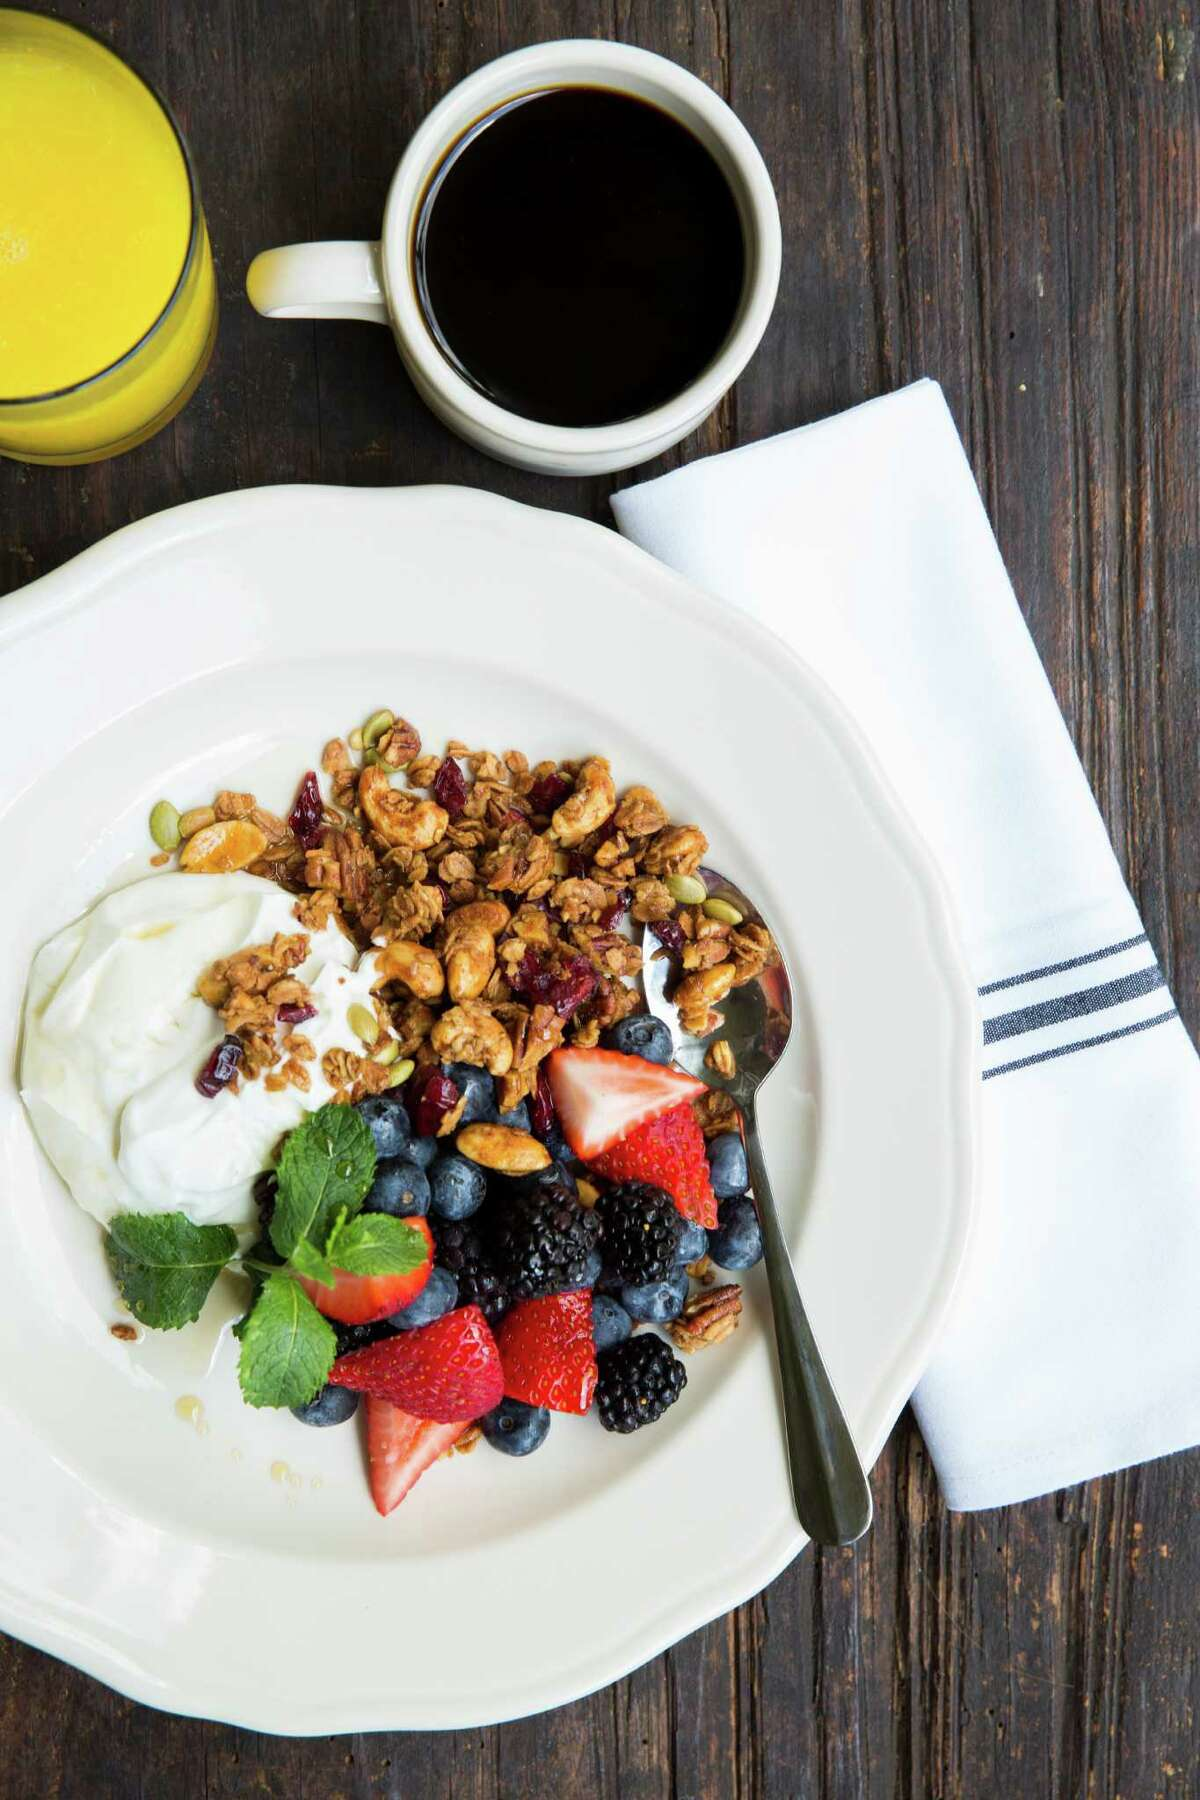 Relish Restaurant & Bar, the second enterprise from the owners of Relish Fine Foods, is scheduled to open early August 2016 at 2810 Westheimer in the former the Bird & the Bear location. Shown: Homemade granola with Greek yogurt and berries.